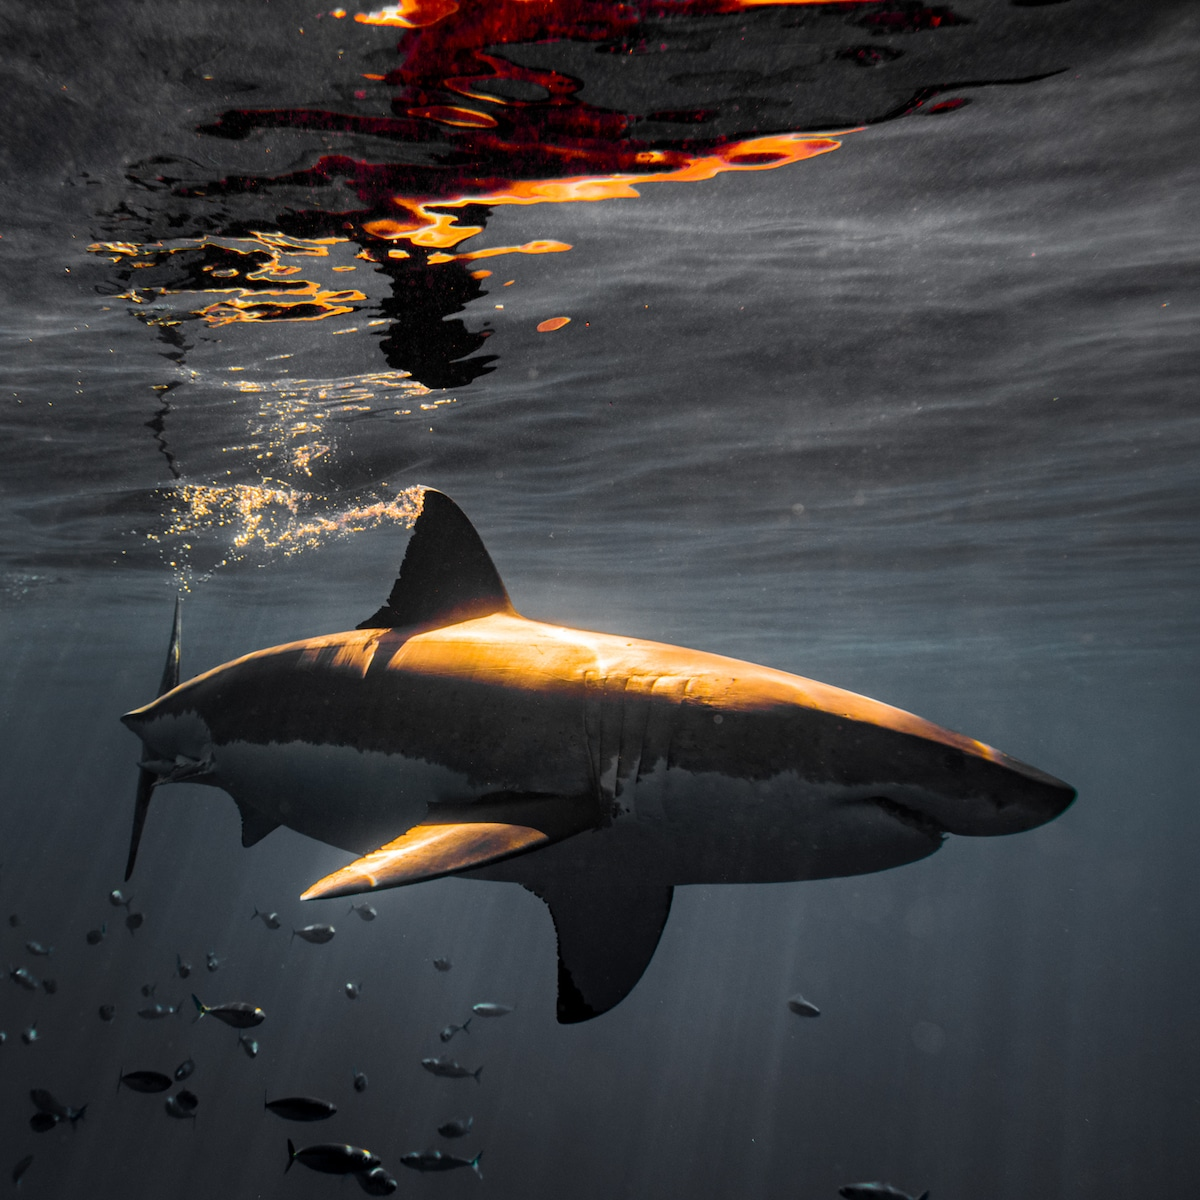 Photo of a Shark by Euan Rannachan